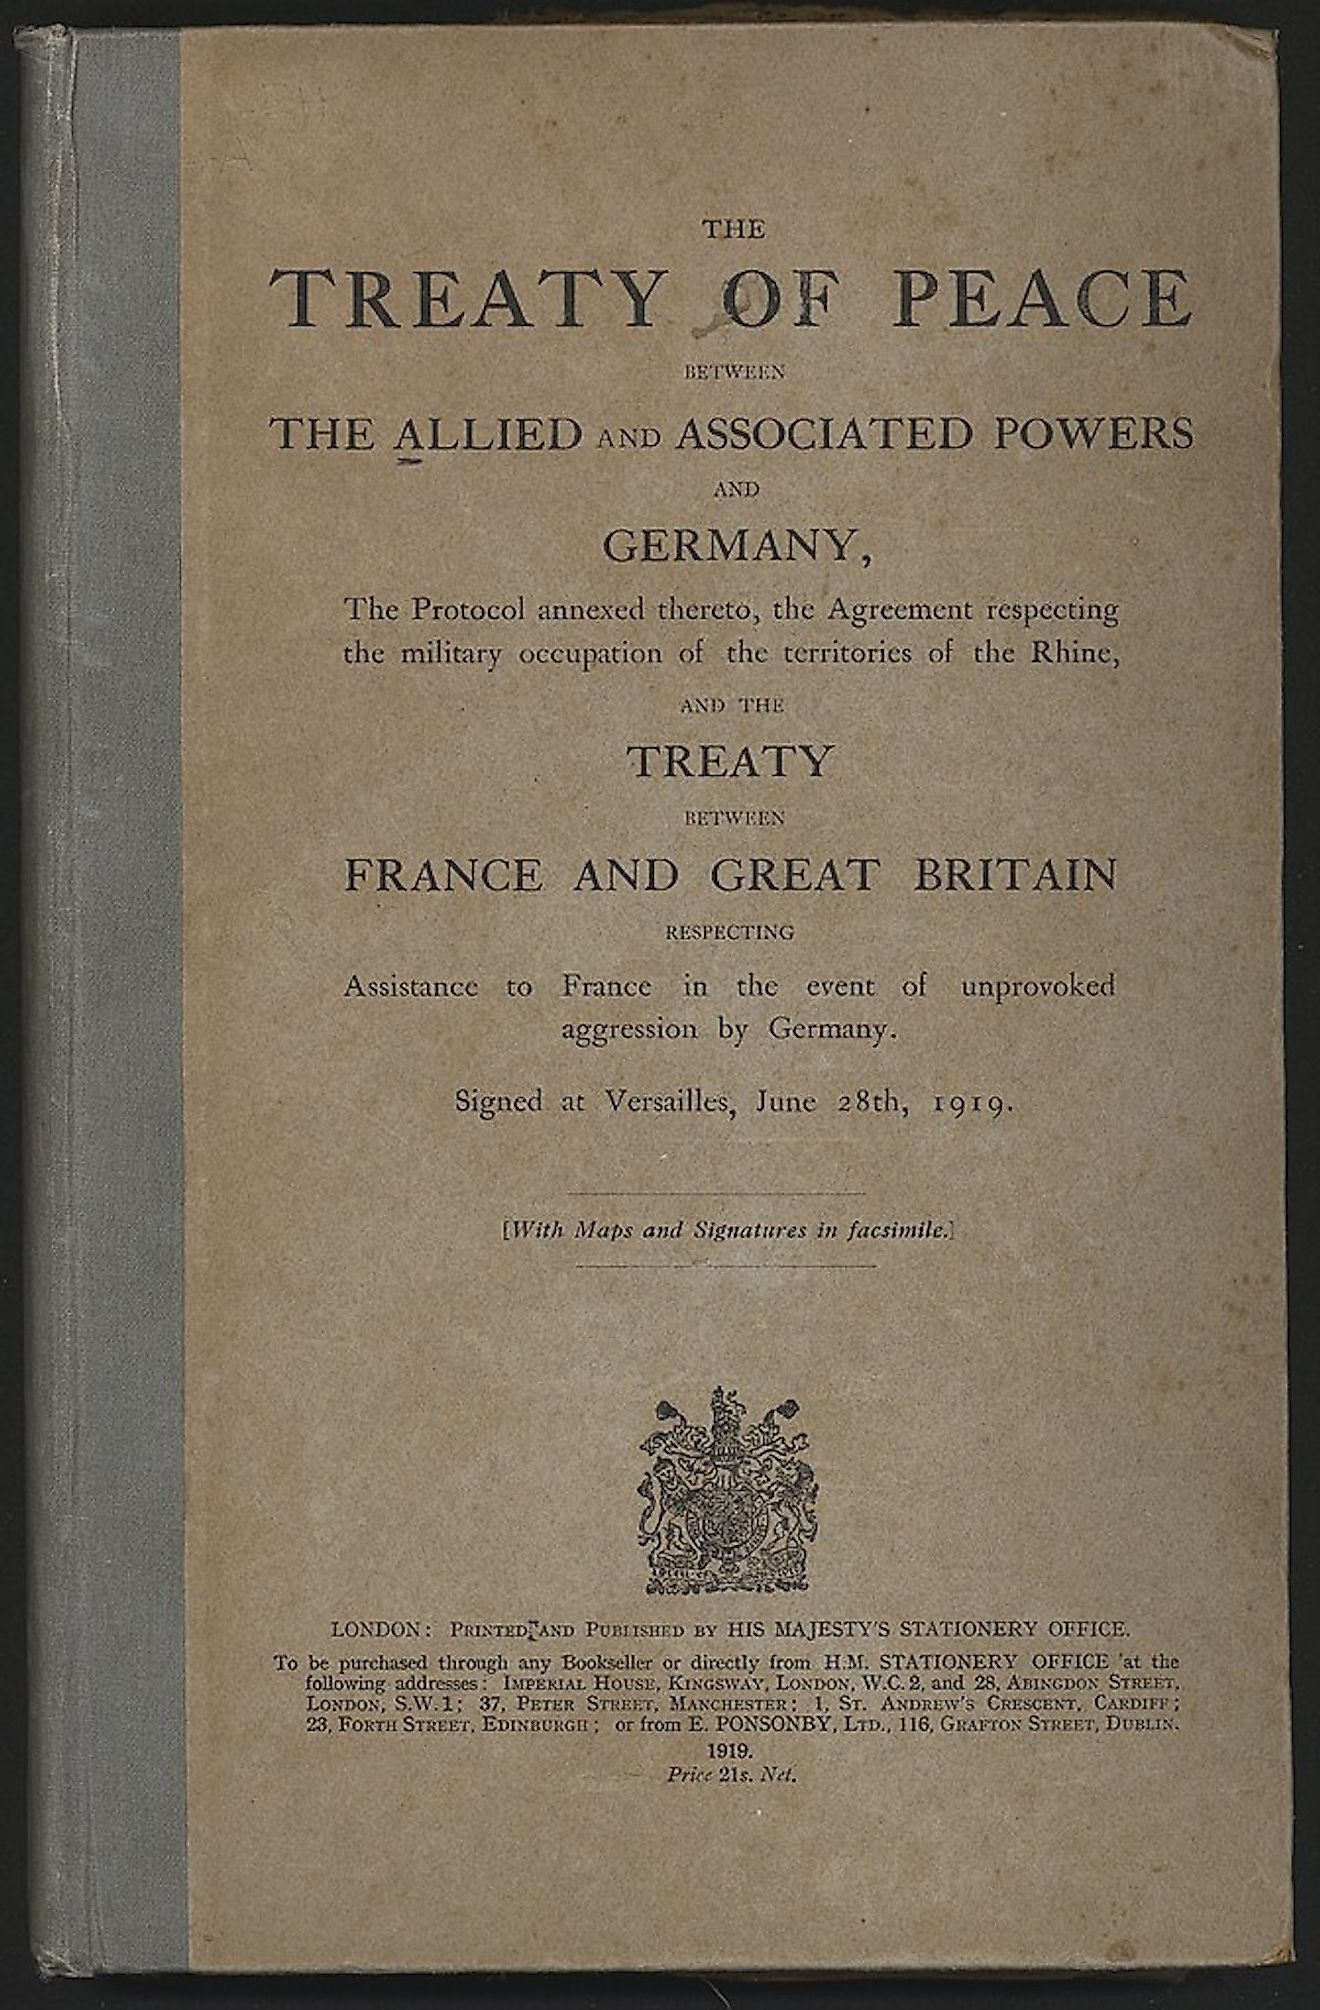 Treaty of Versailles, English version. Image credit: Auckland War Memorial Museum/Public domain